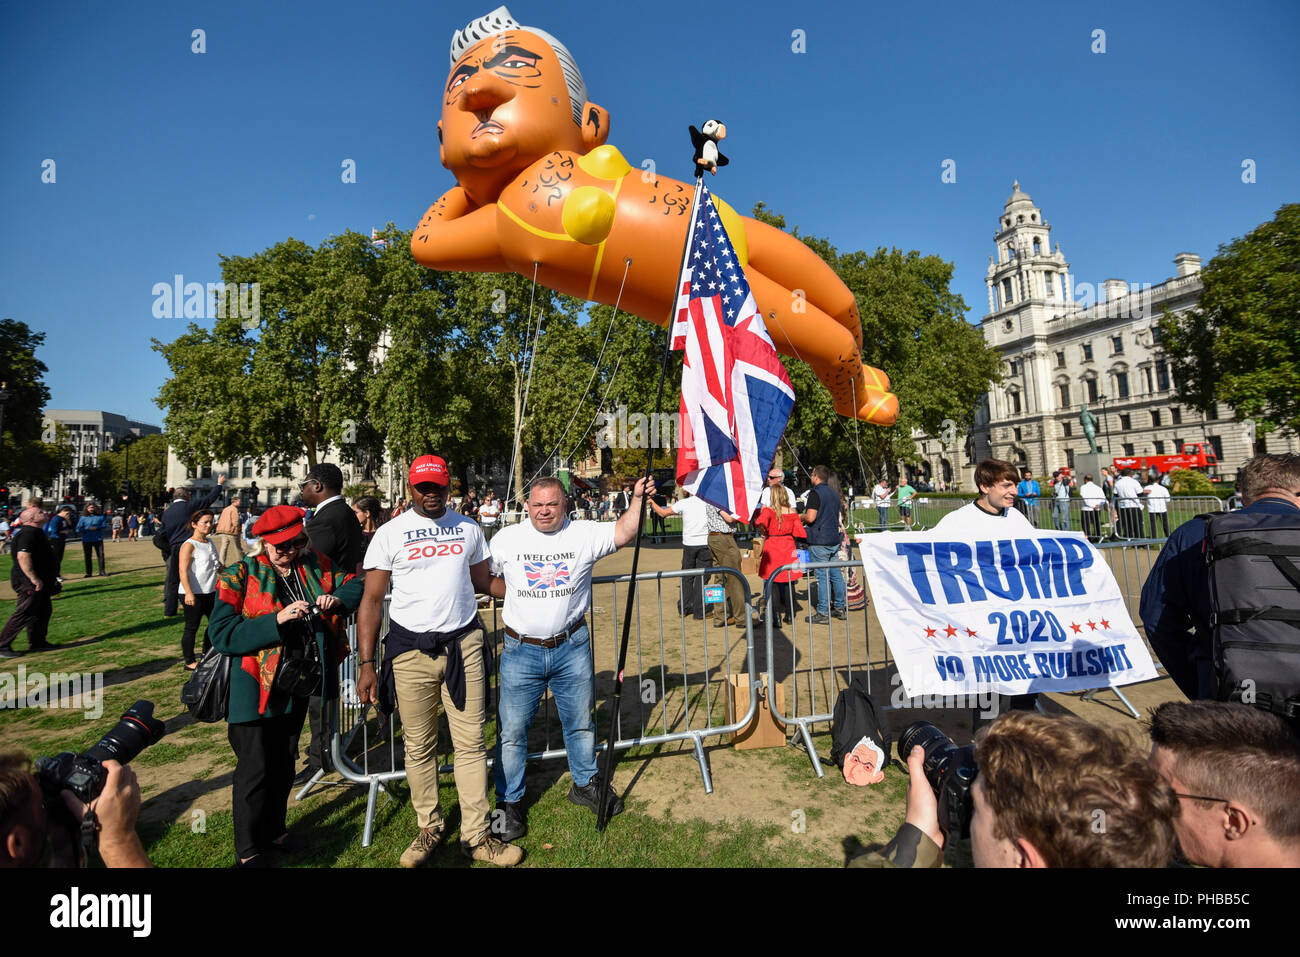 London, UK.  1 September 2018.  Donald Trump supporters stand in front of a 29 foot giant balloon depicting Sadiq Khan, Mayor of London, wearing a yellow bikini, flying over Parliament Square.  Activist Yanny Bruere raised £58,000 to fly the balloon in protest at the Mayor's decision to allow a giant balloon of Donald Trump as a baby to be flown during his visit to the UK.  The Sadiq Khan balloon is part of Buere's 'Make London Safe Again' campaign, a reference to a surge in violent crime in London and Mr Trump's slogan 'Make America Safe Again'. Credit: Stephen Chung / Alamy Live News - Stock Image